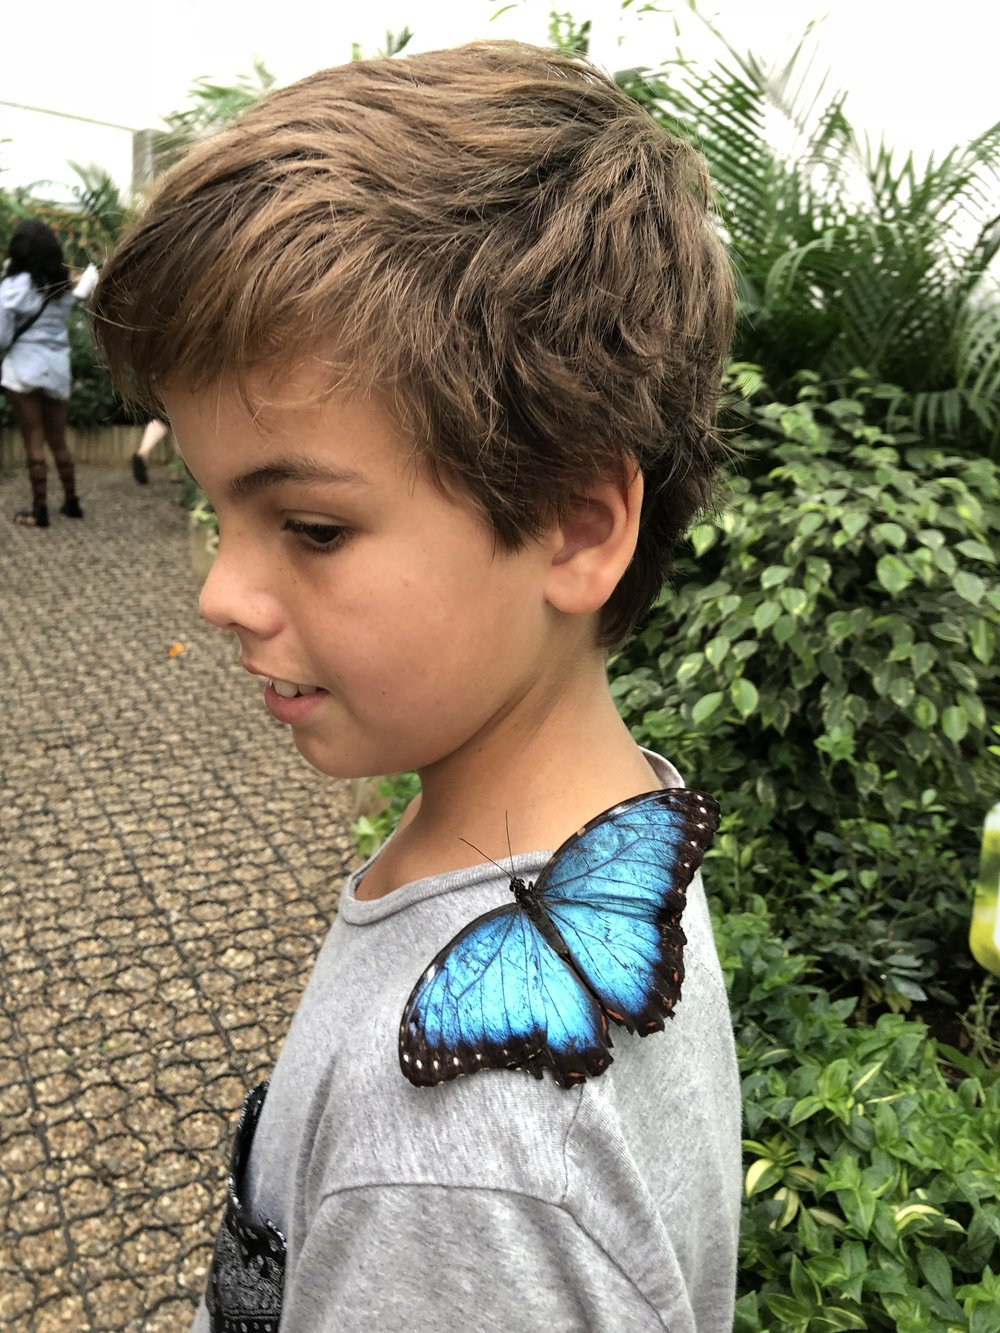 This was so amazing to go to this butterfly garden. It was so extraordinary that I got like 6 butterflies on me. This one was the most fascinating and beautiful one that landed on me. So that was really cool.